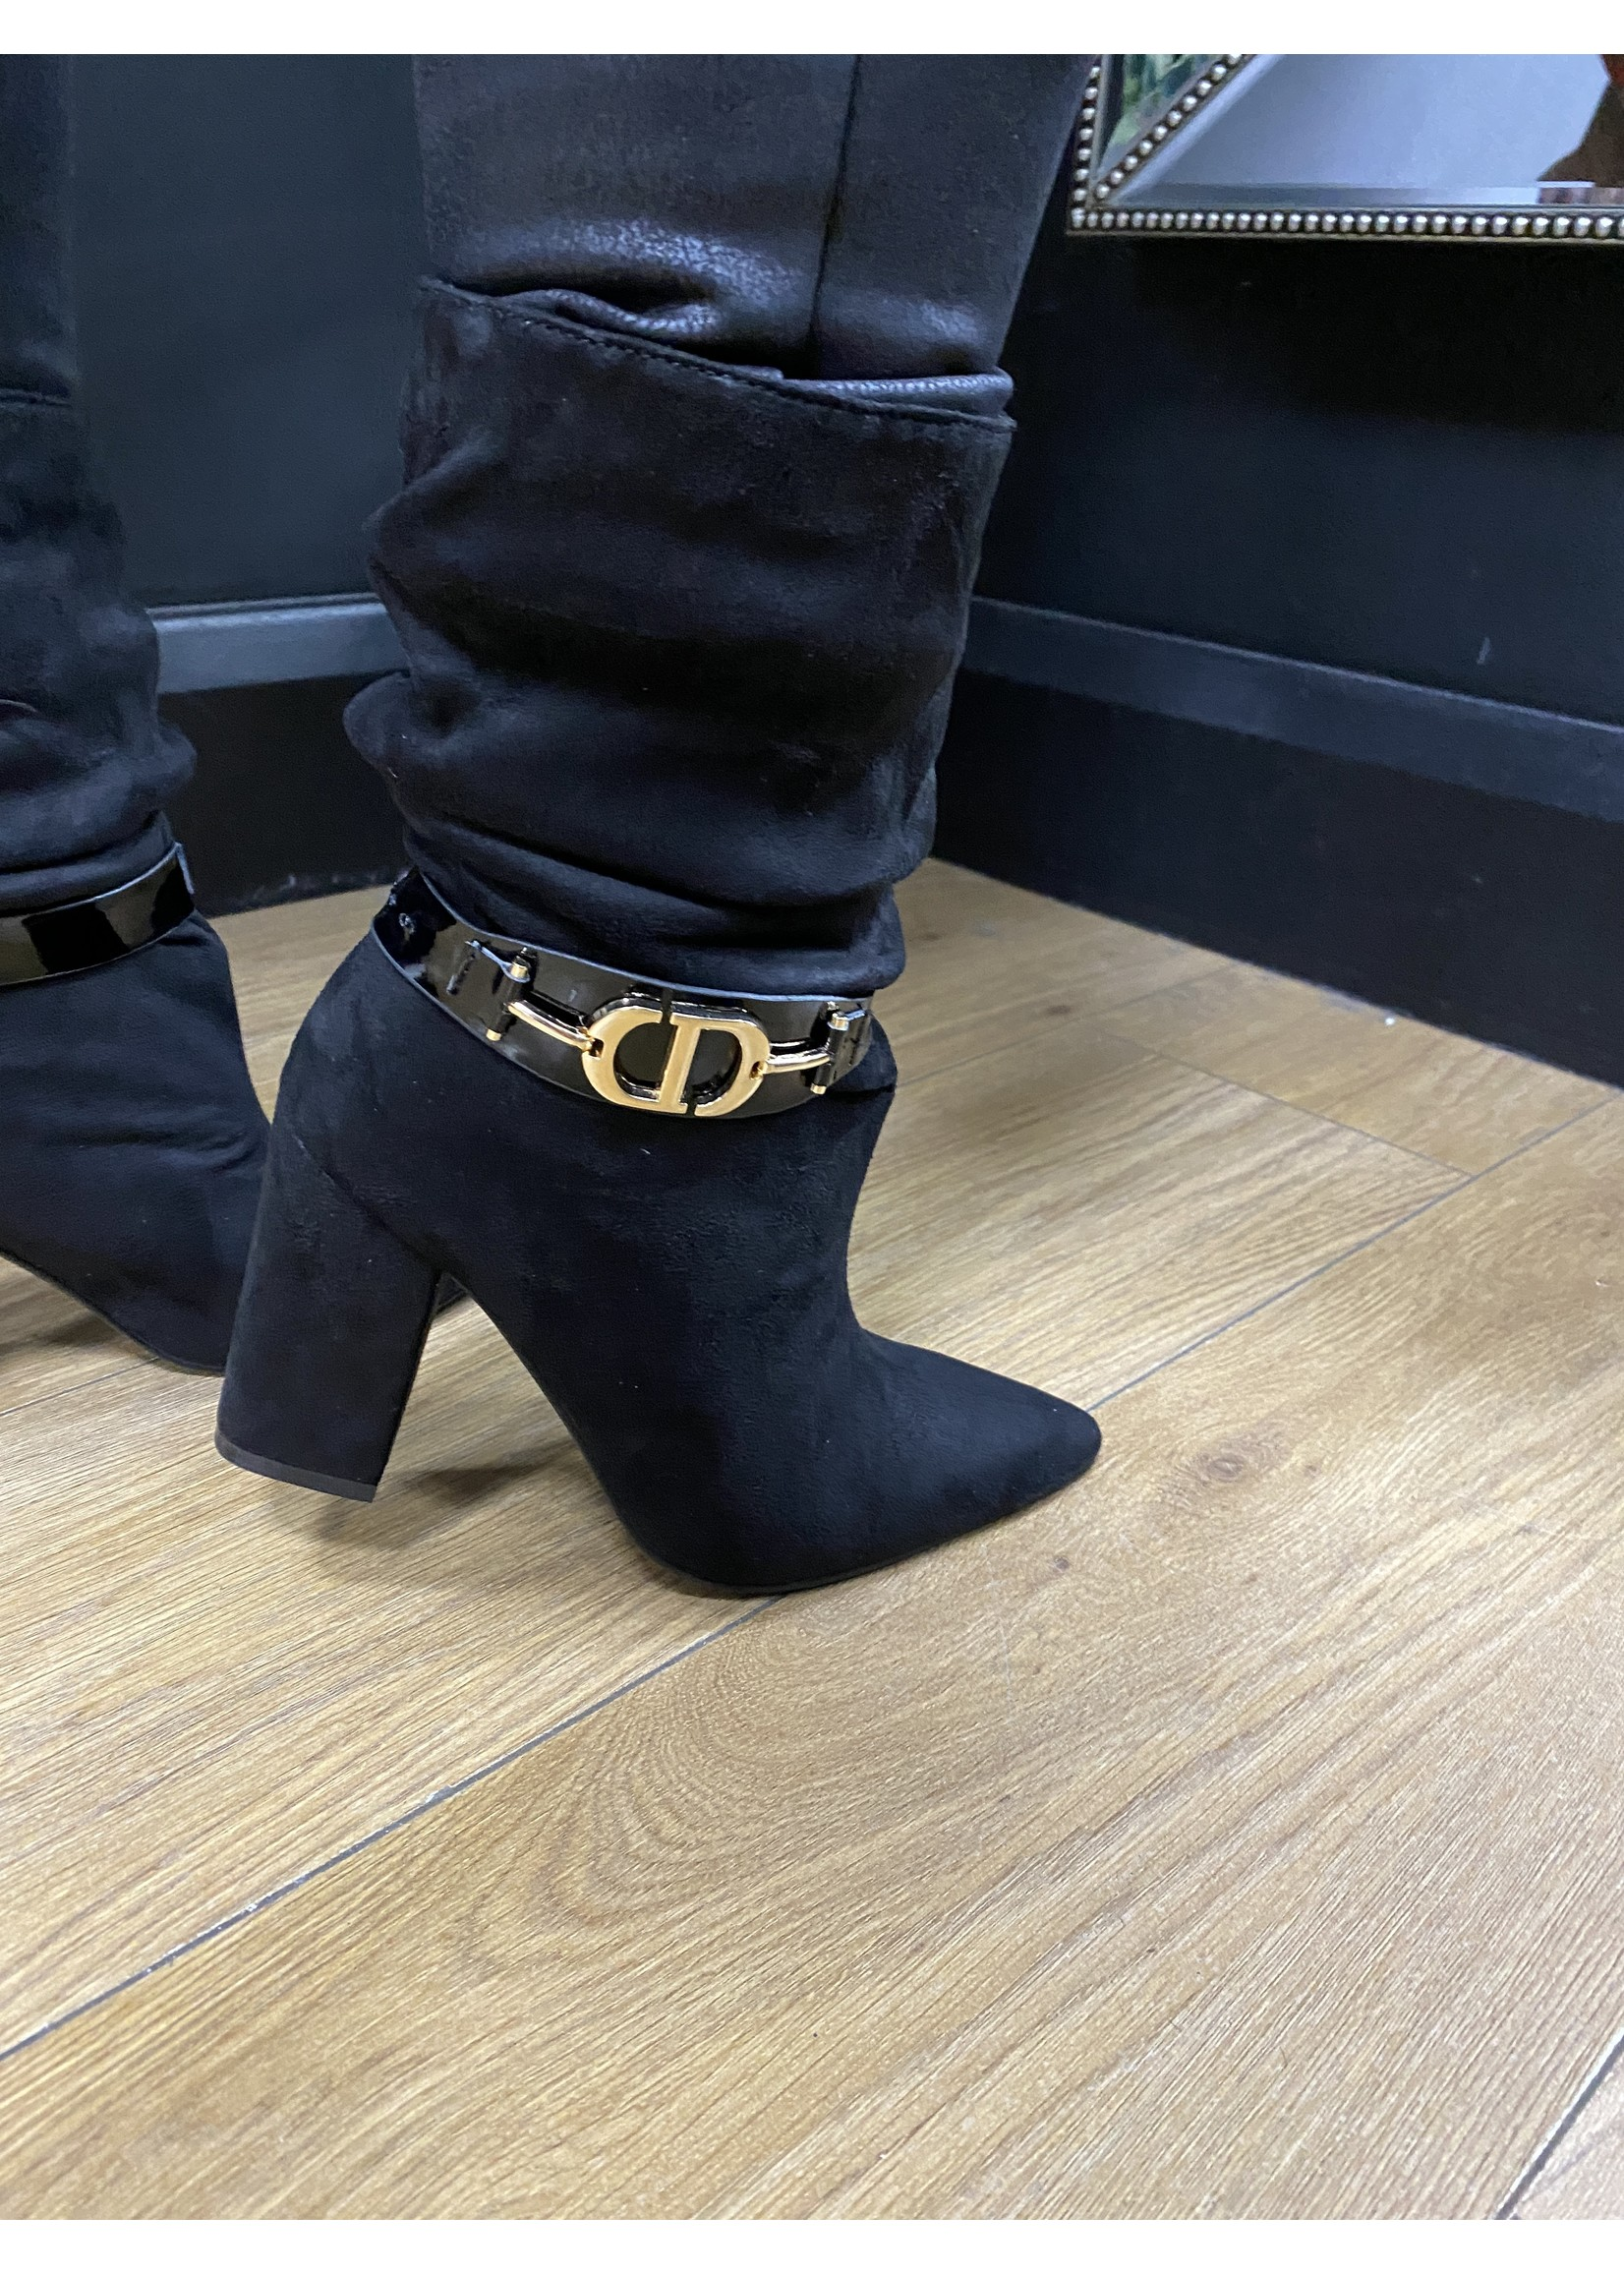 Chrissy ruched boots